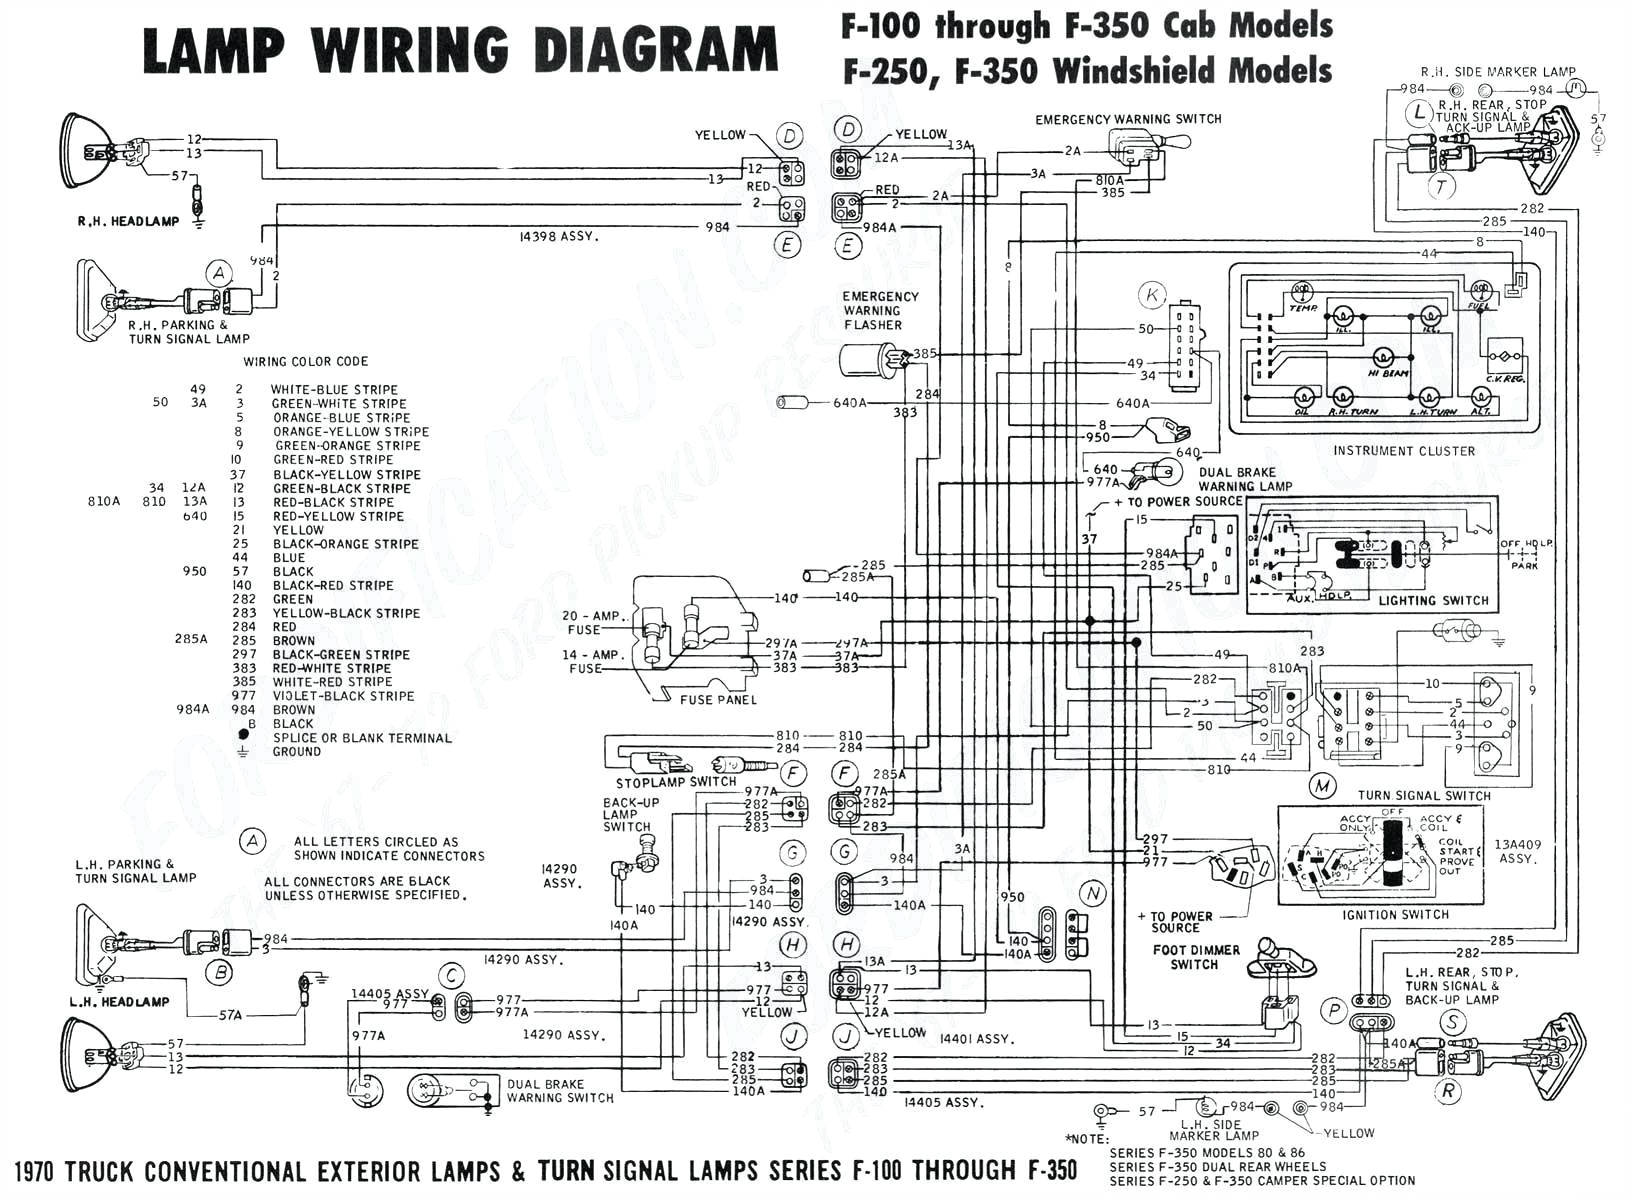 low voltage switch wiring diagram free download wiring diagram name 12 gang switch panel wiring diagram free download